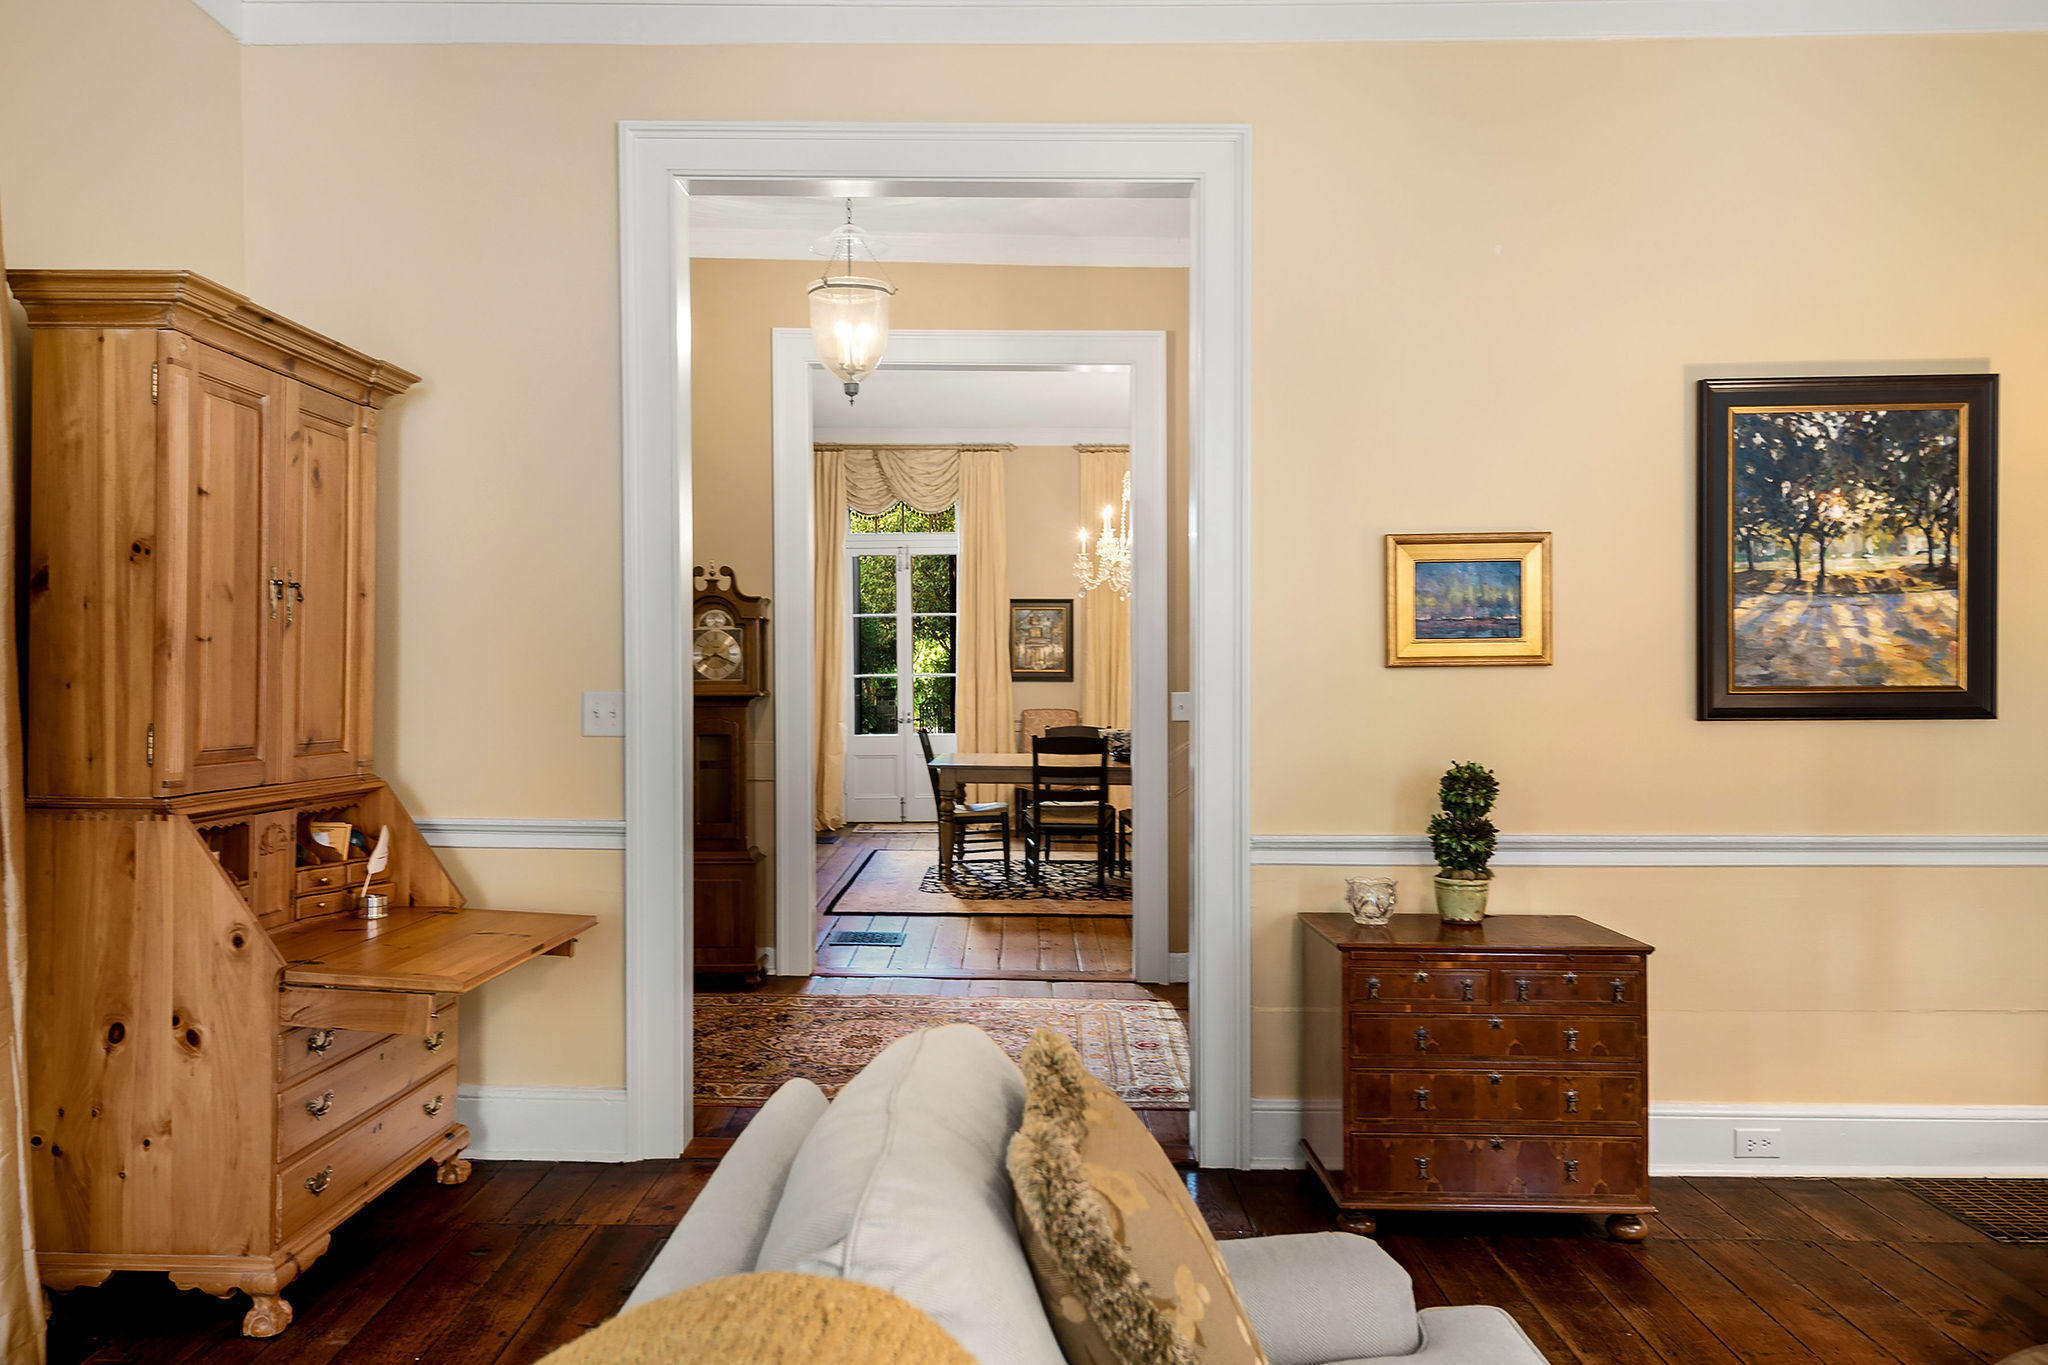 South of Broad Homes For Sale - 54 Tradd, Charleston, SC - 17